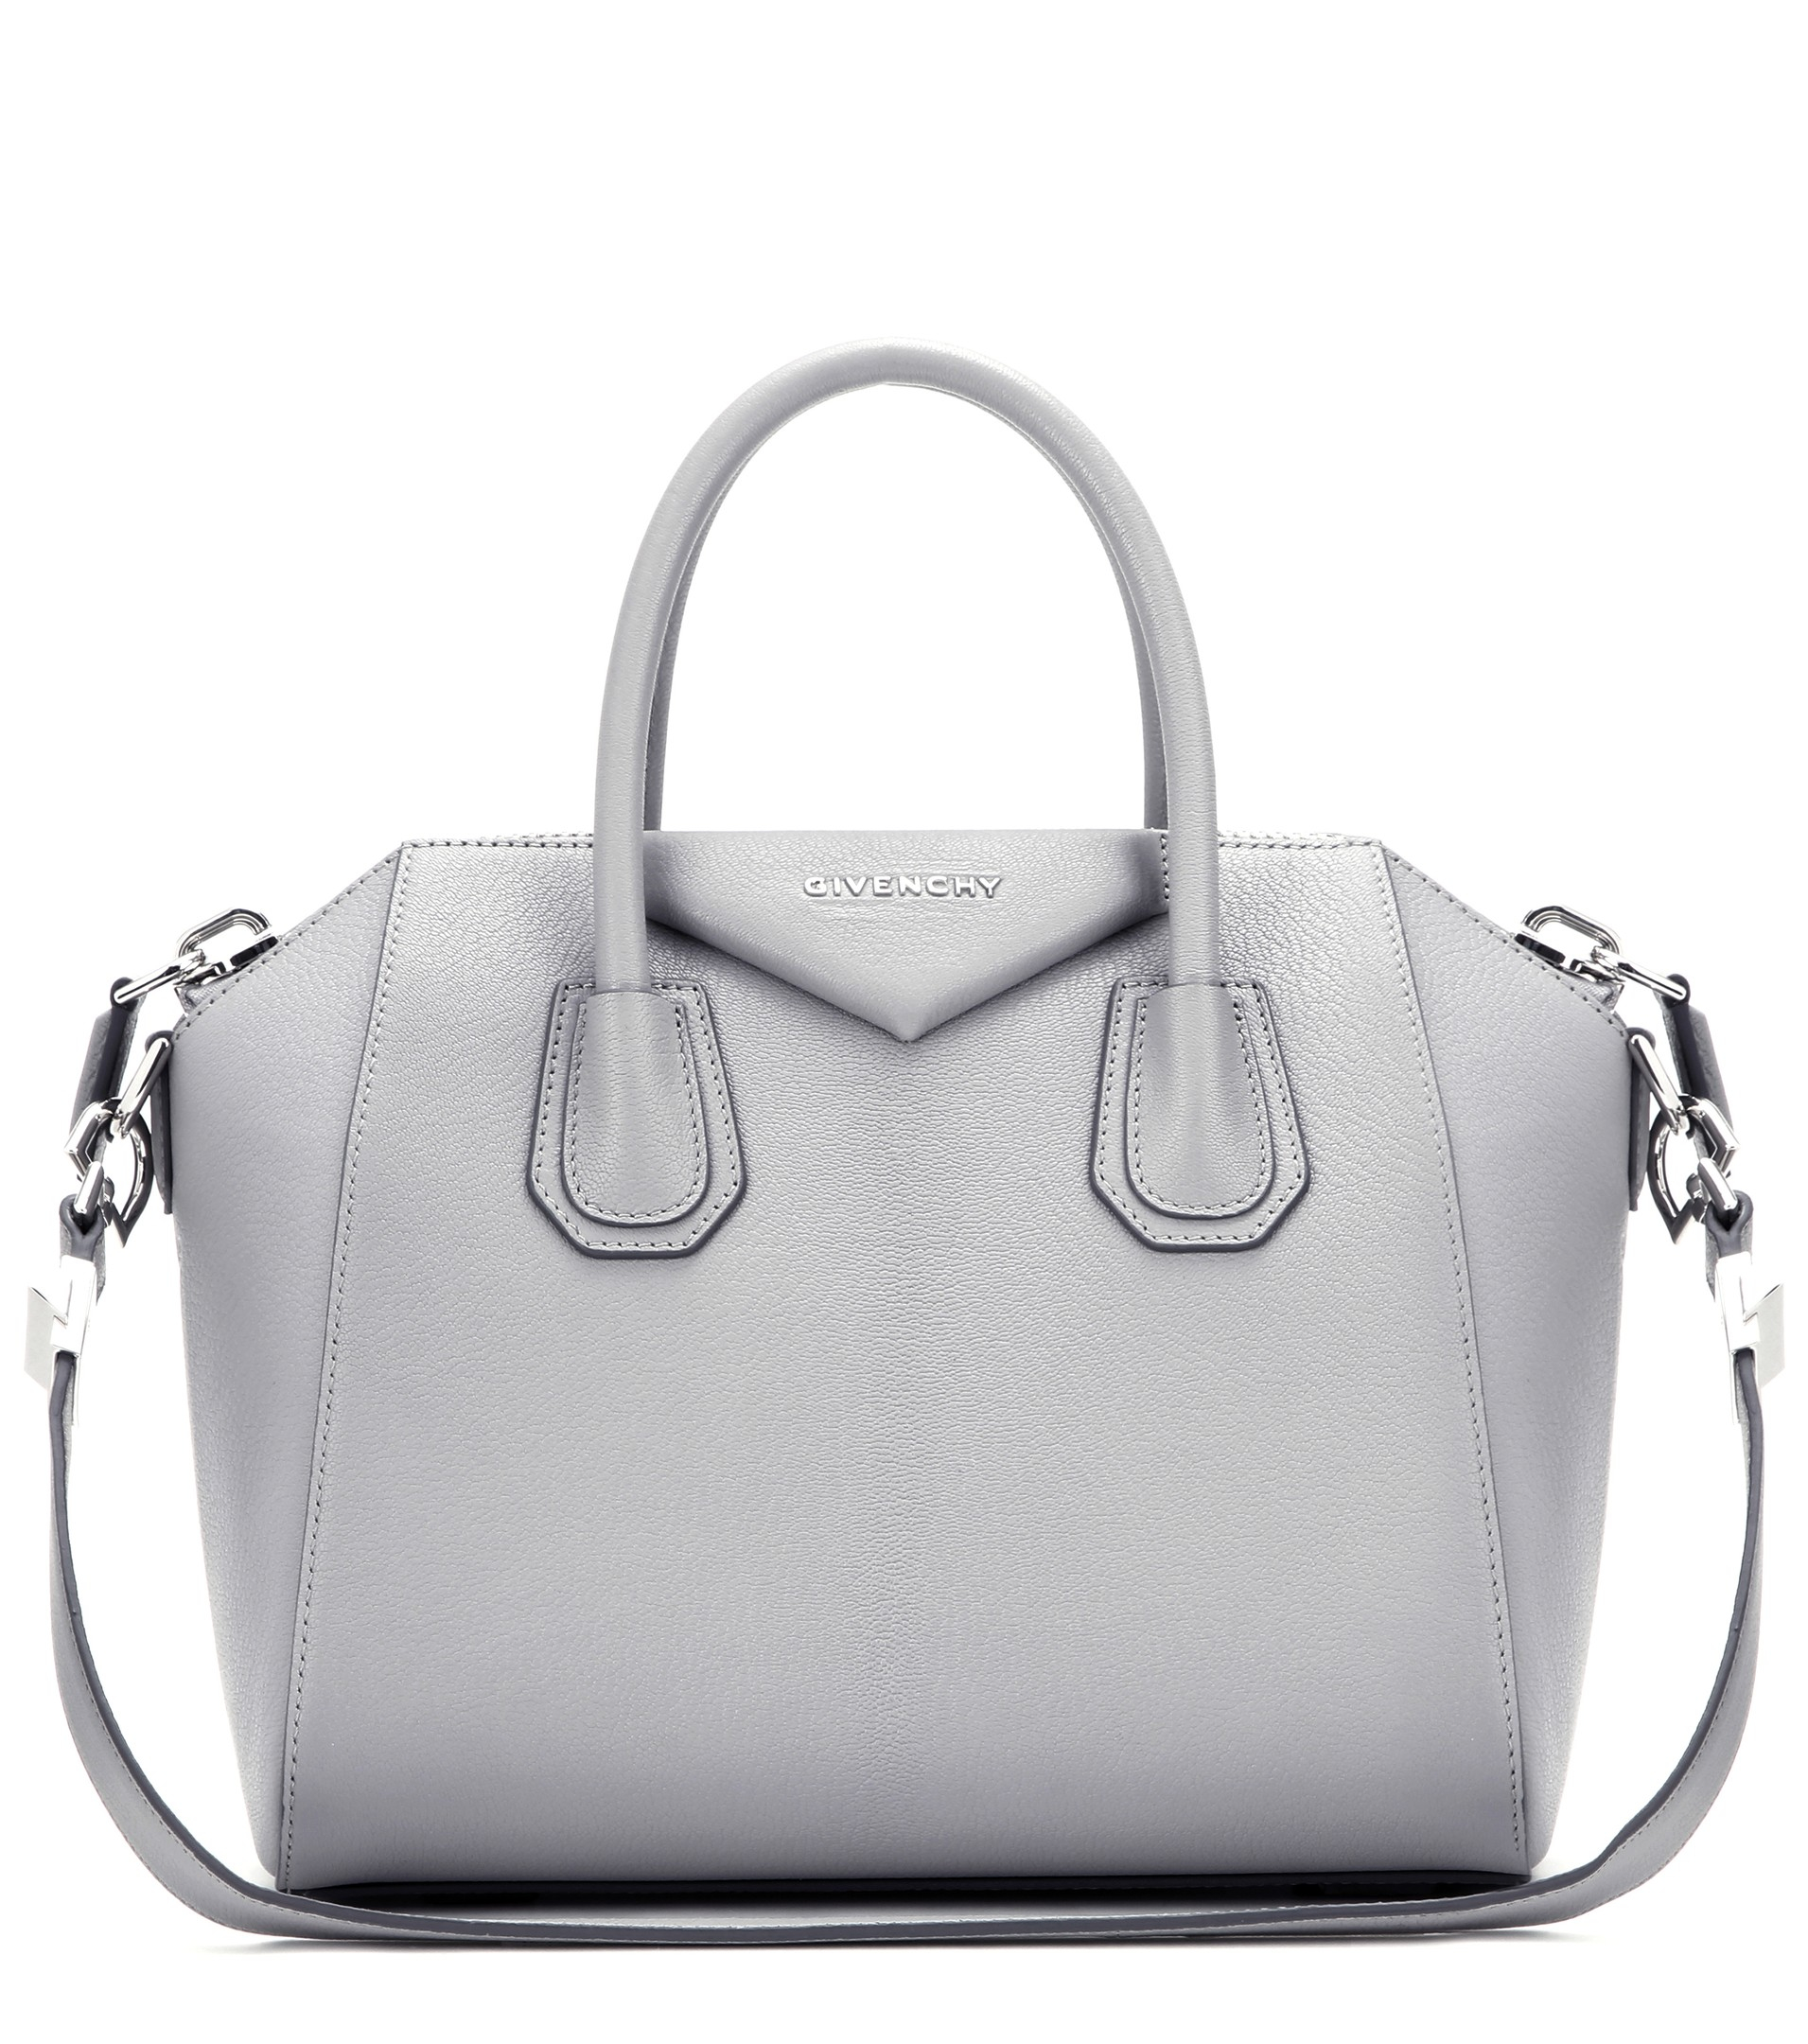 Givenchy Antigona Small Leather Tote in Gray - Lyst 59934884f5